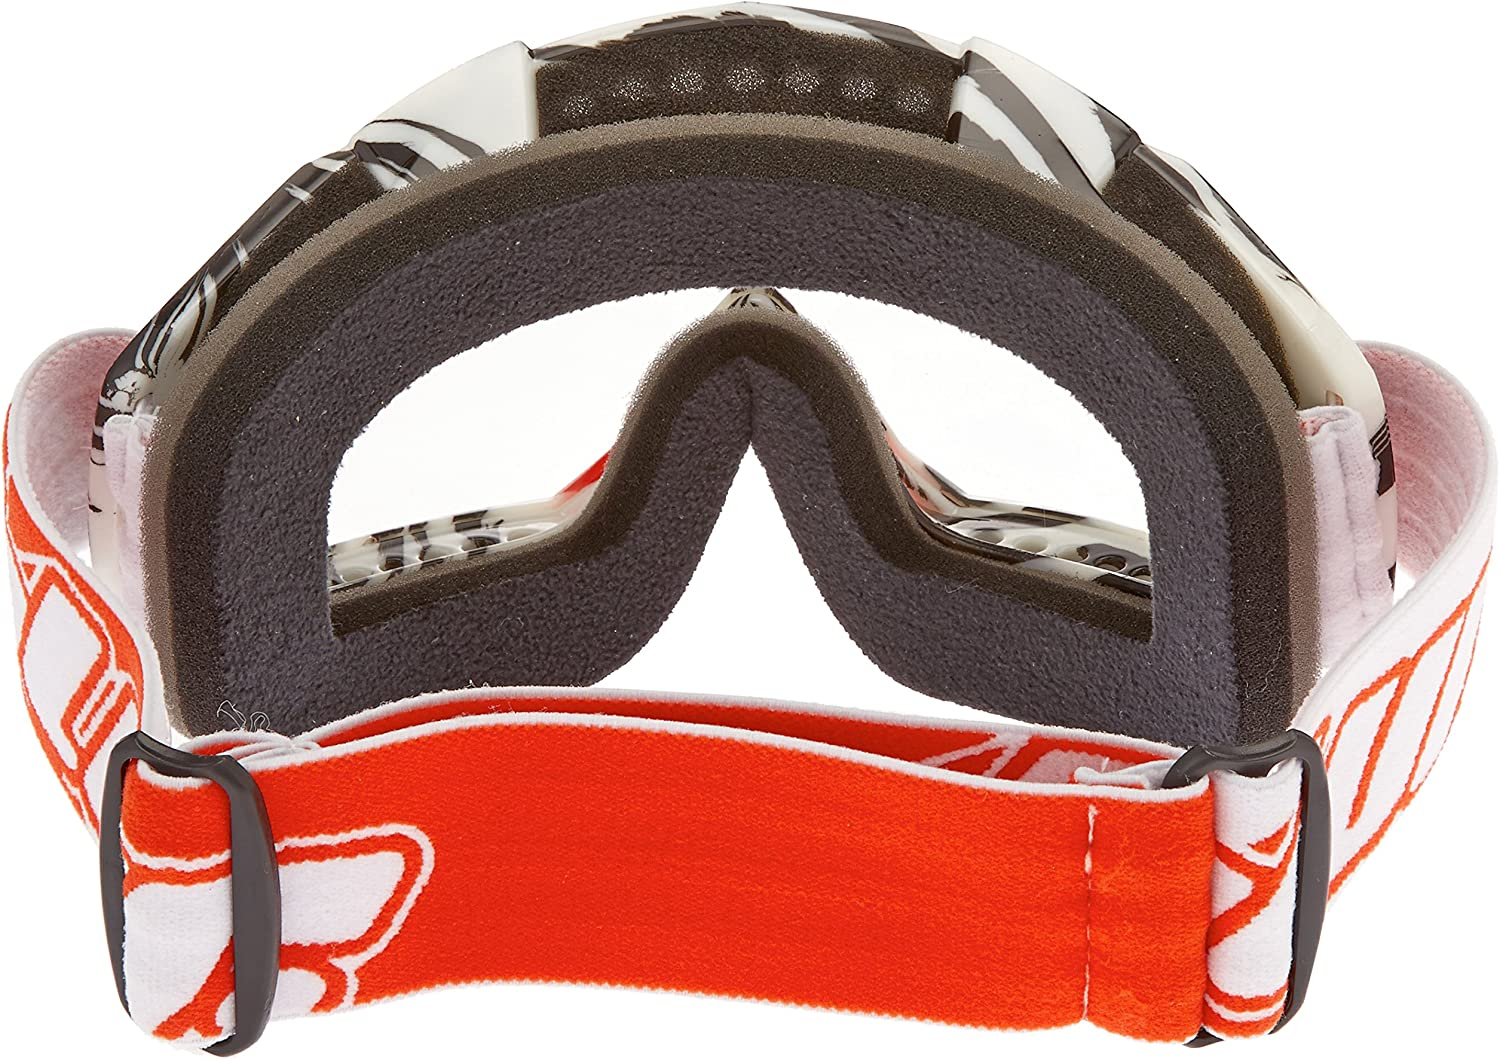 ONeal Blur B-Flex Limited Edition Goggles Nex, Red Frame//Clear Lens